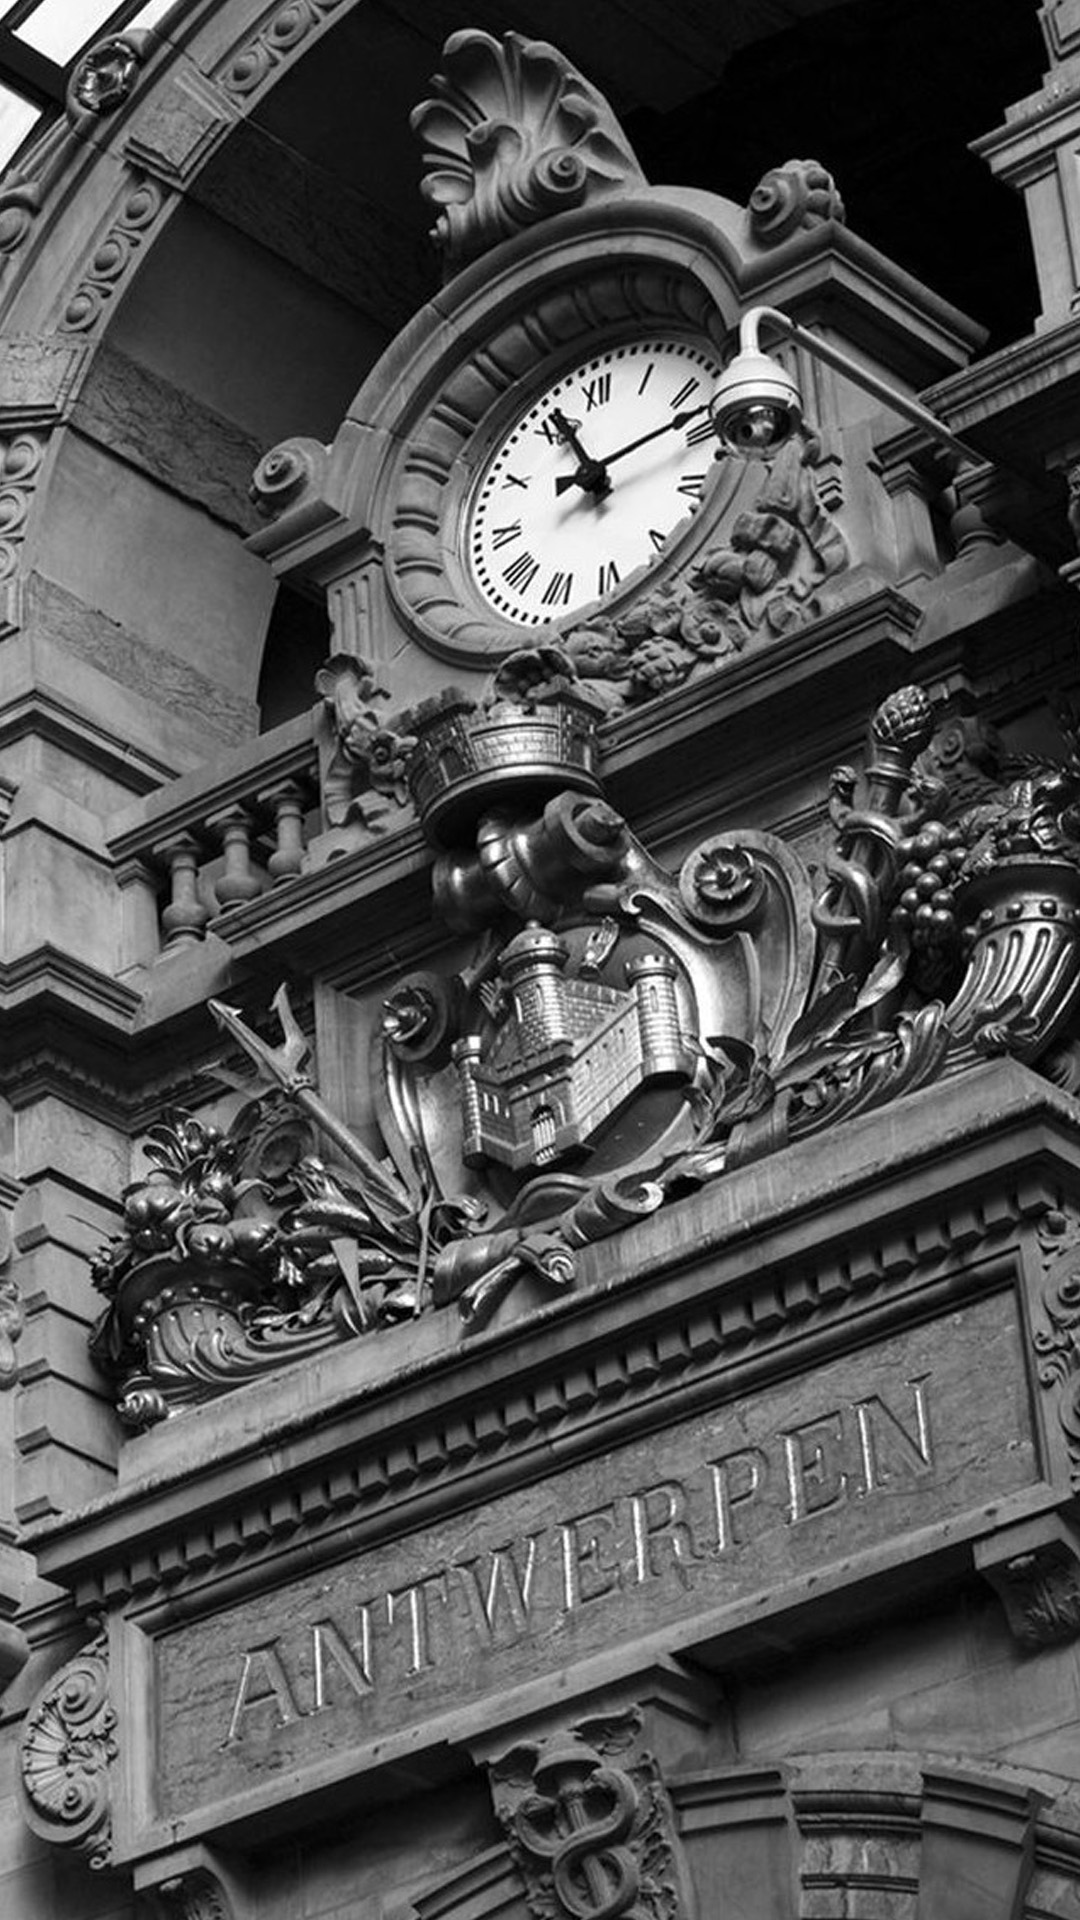 Antwerpen Clock Android wallpaper